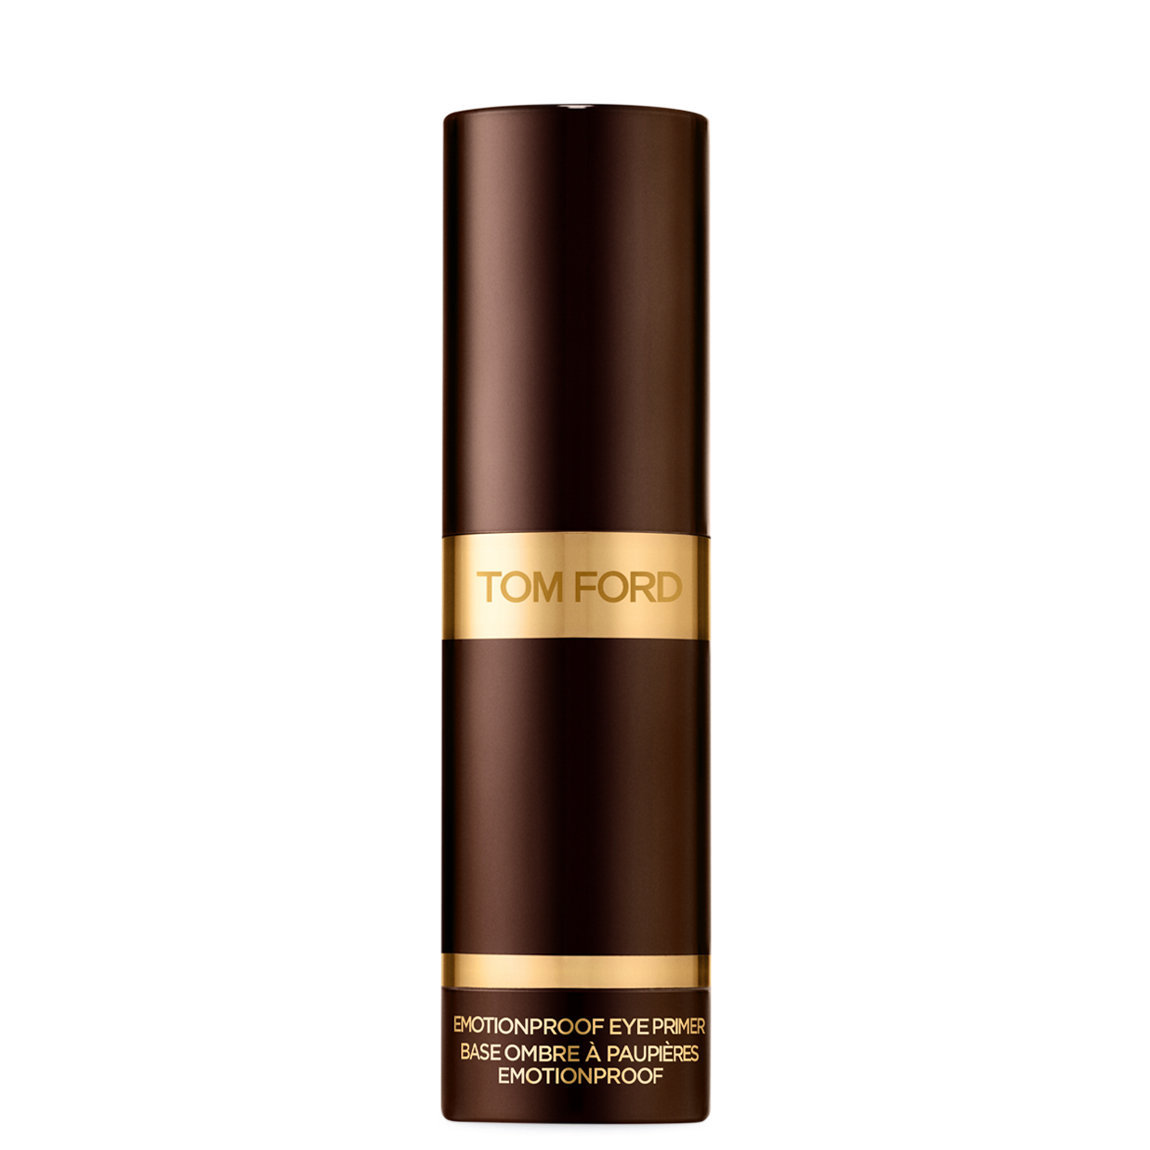 TOM FORD Emotionproof Eye Primer alternative view 1 - product swatch.